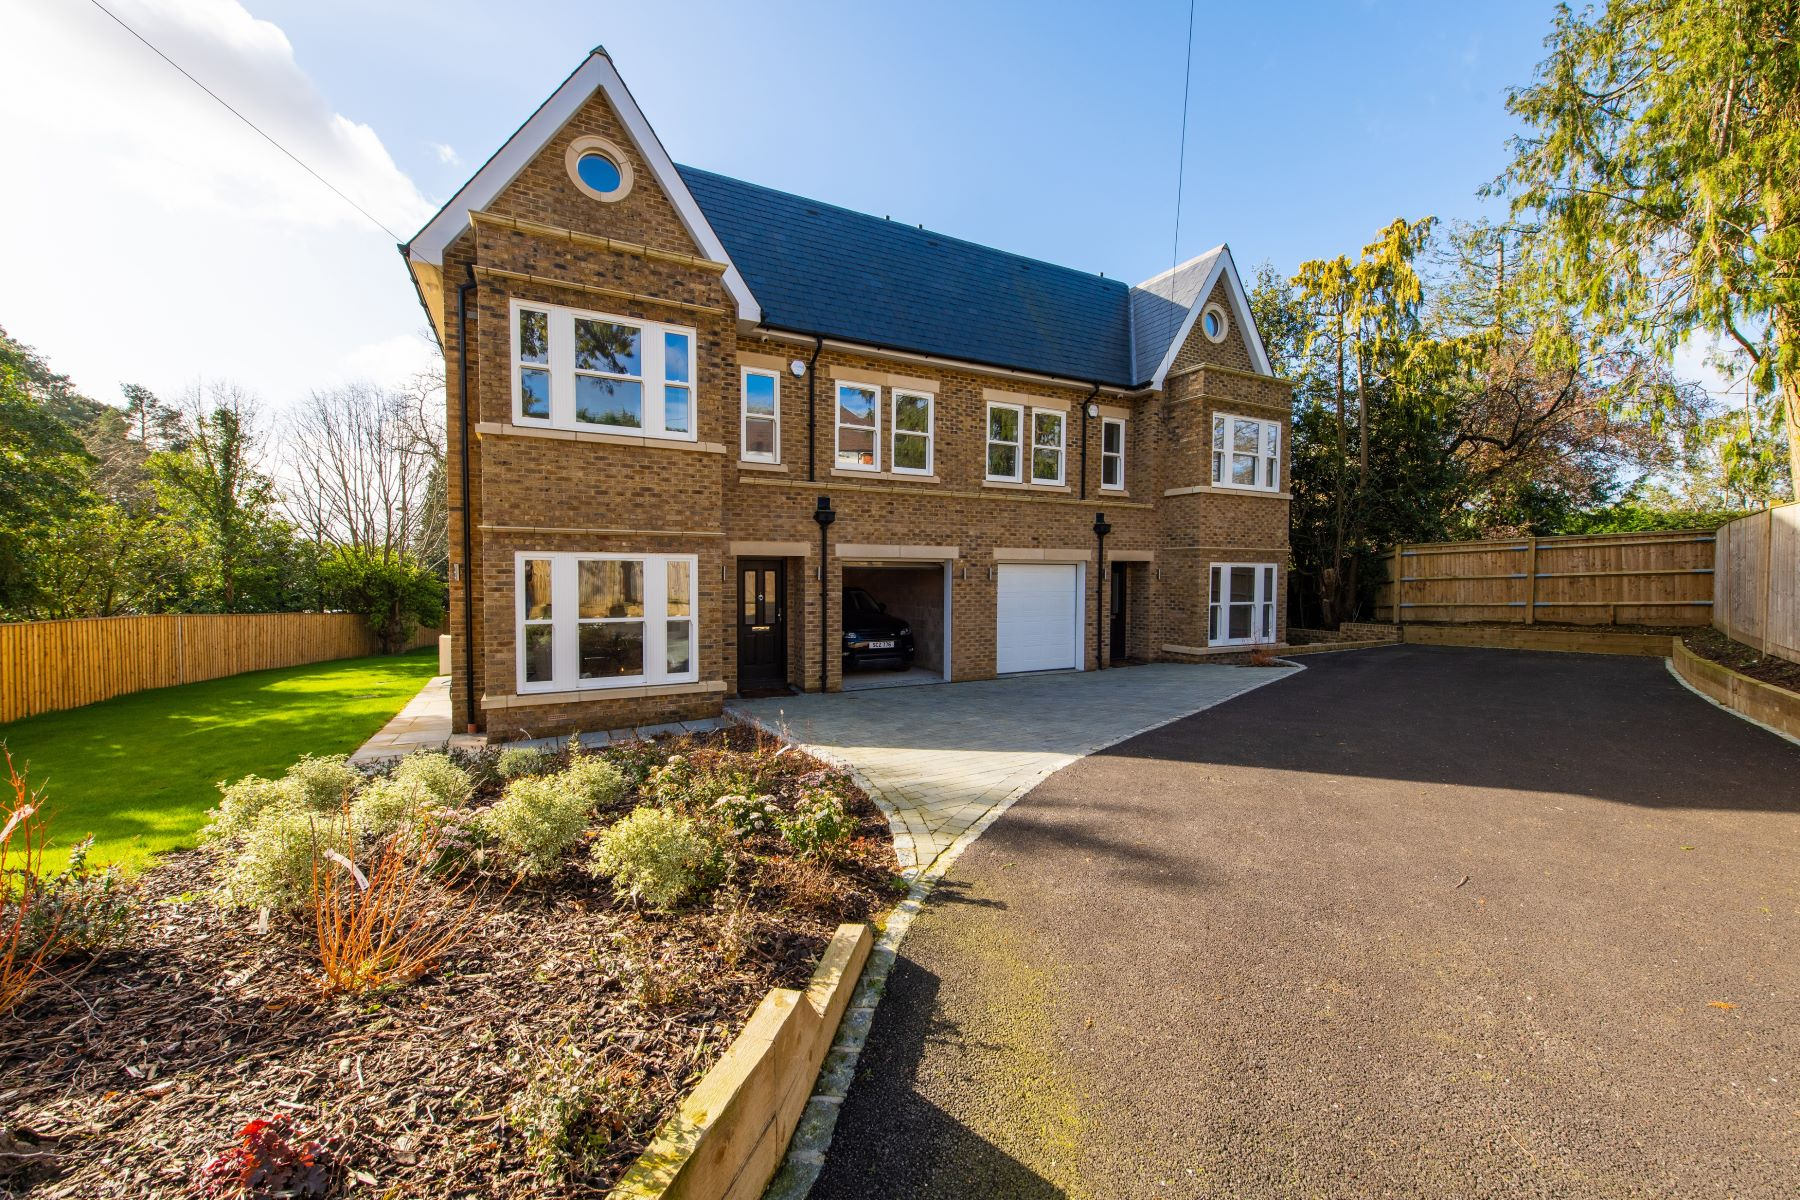 Single Family Homes for Sale at 2 Willowcroft Leatherhead Road Other England, England KT22 0HG United Kingdom